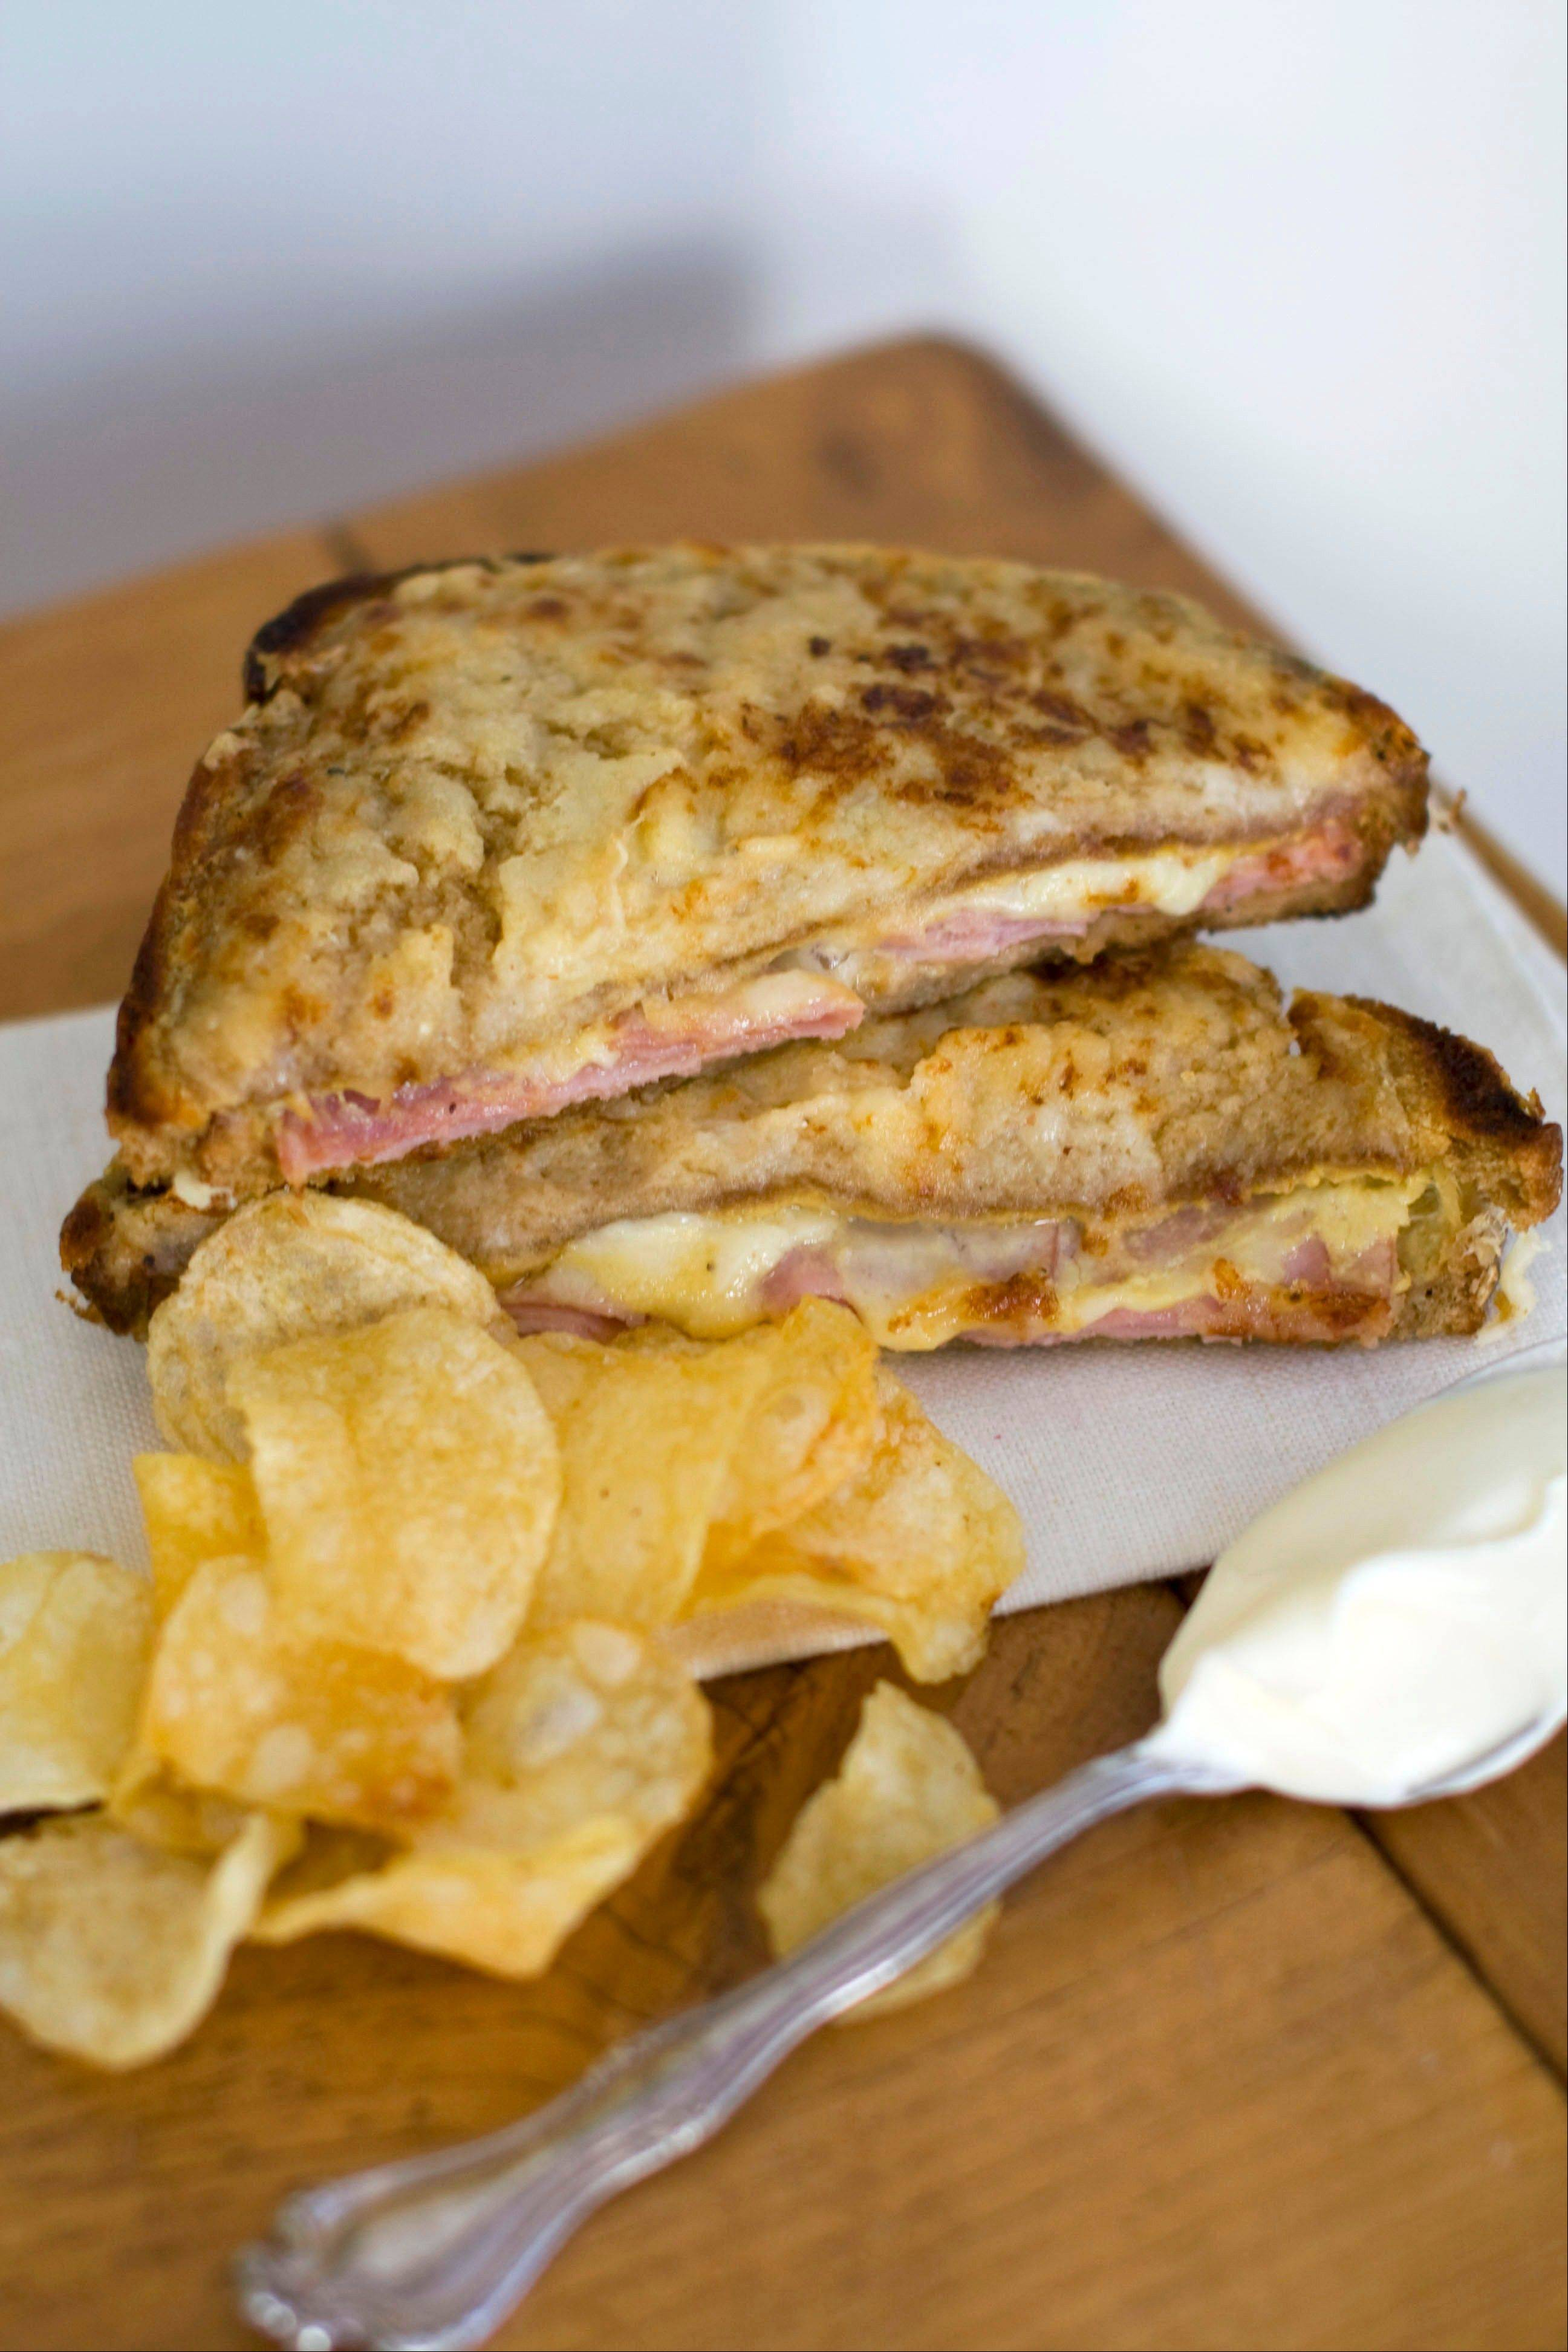 In this image taken on Jan. 9, 2012, Croque Monsieur is shown in Concord, N.H.